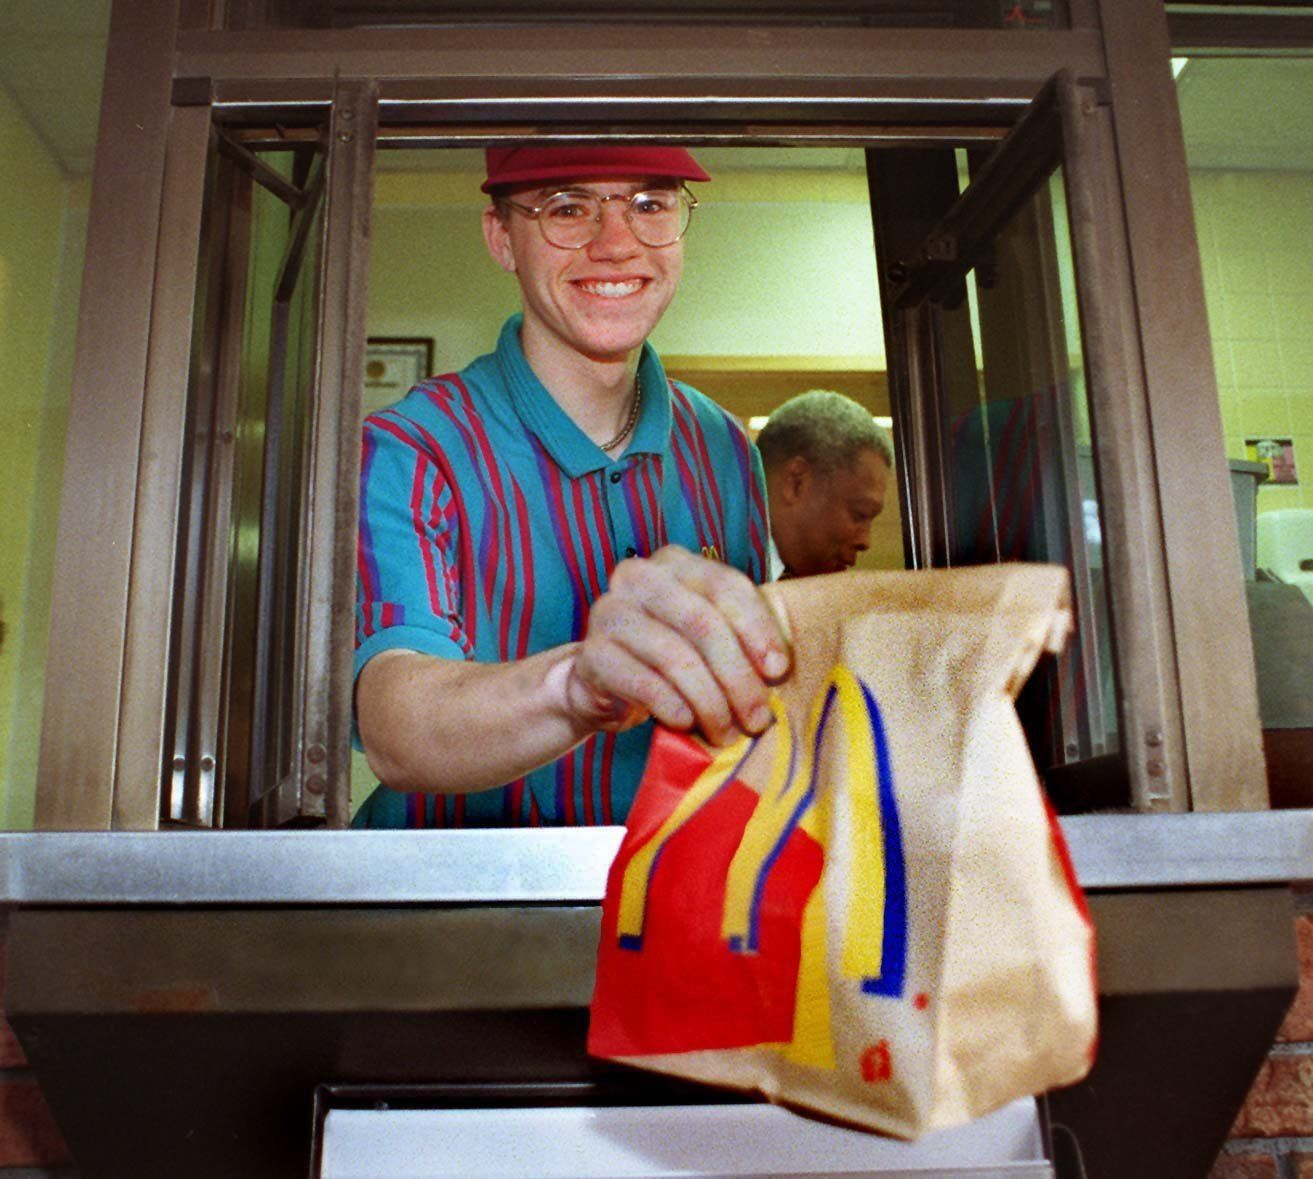 8-Year-Old 'Borrows' Dad's Car, Drives To McDonald's For